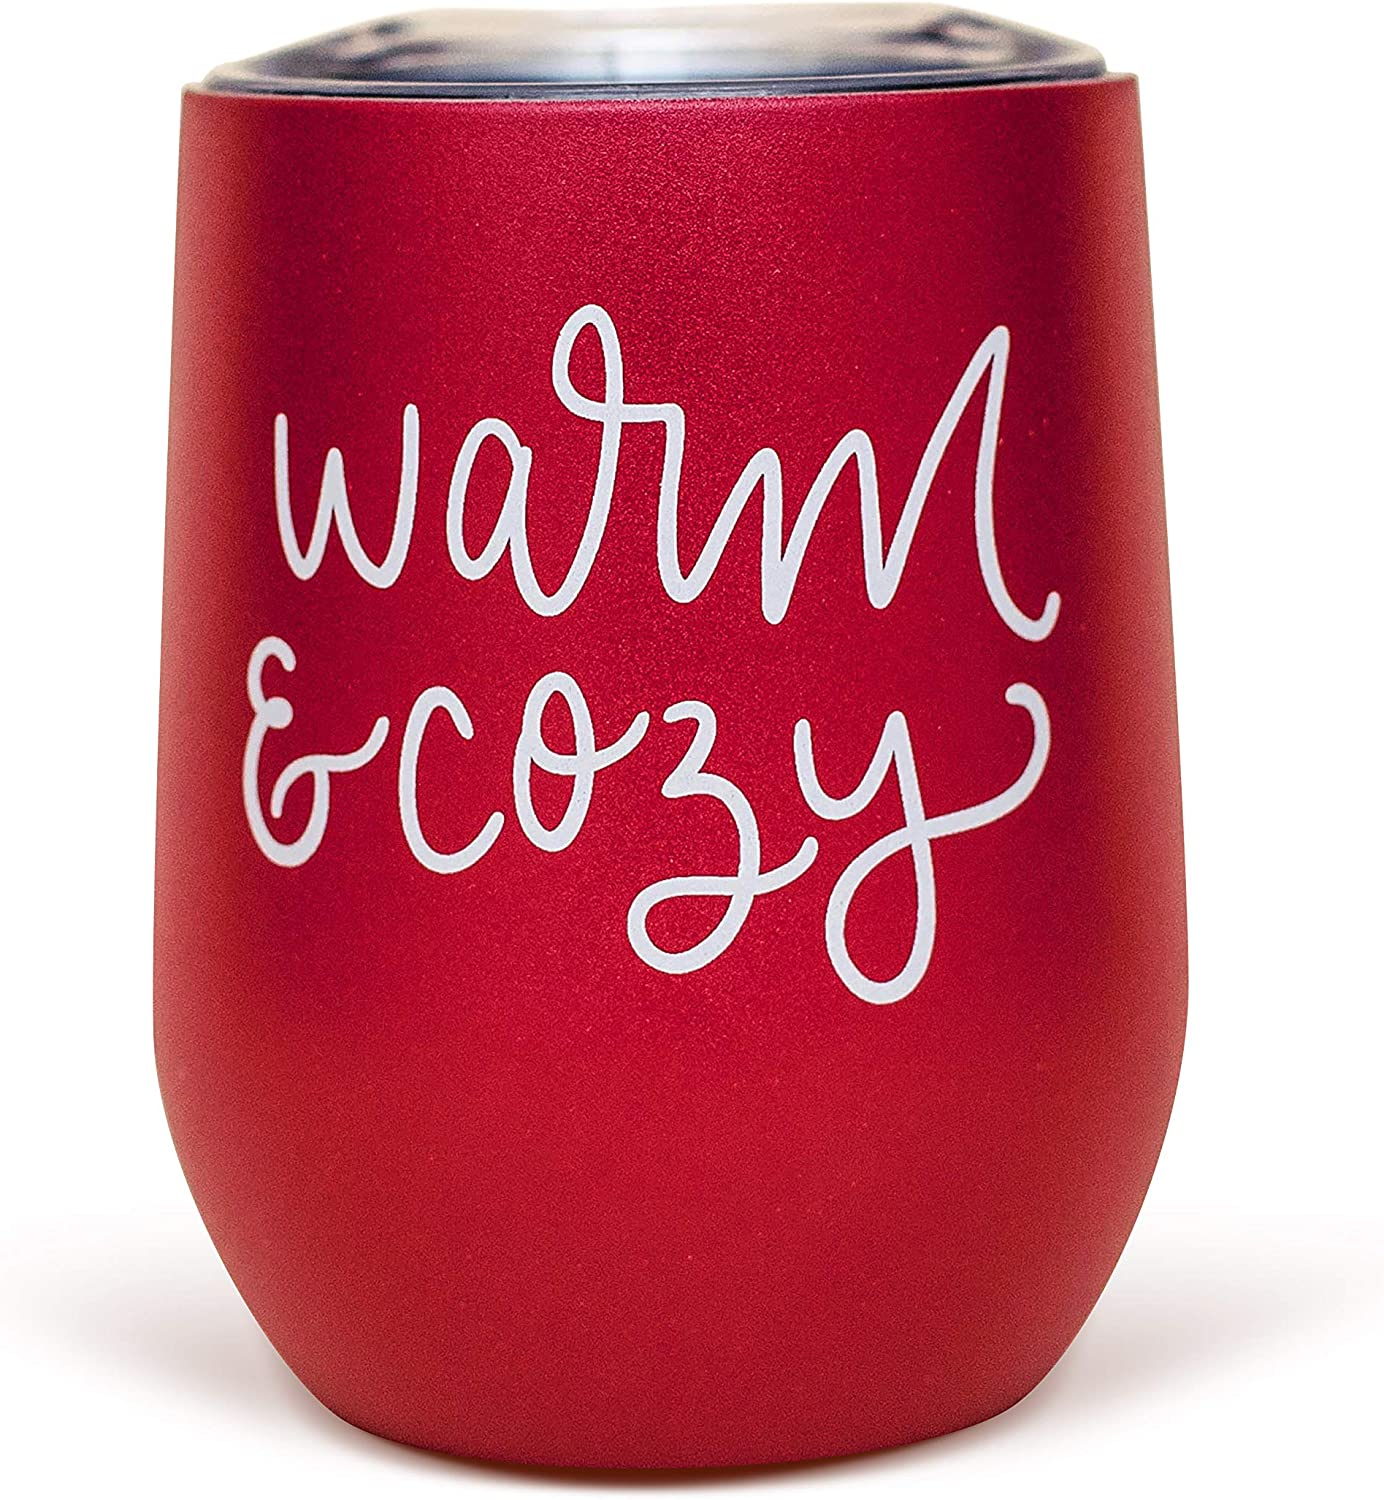 Sweet Water Decor Warm and Cozy Metal Wine Tumbler | 12oz Stainless Steel Insulated Stemless Wine Cup With Lid | Cute Wine Glass with Funny Sayings for Women, Christmas, Holiday, Winter, Xmas